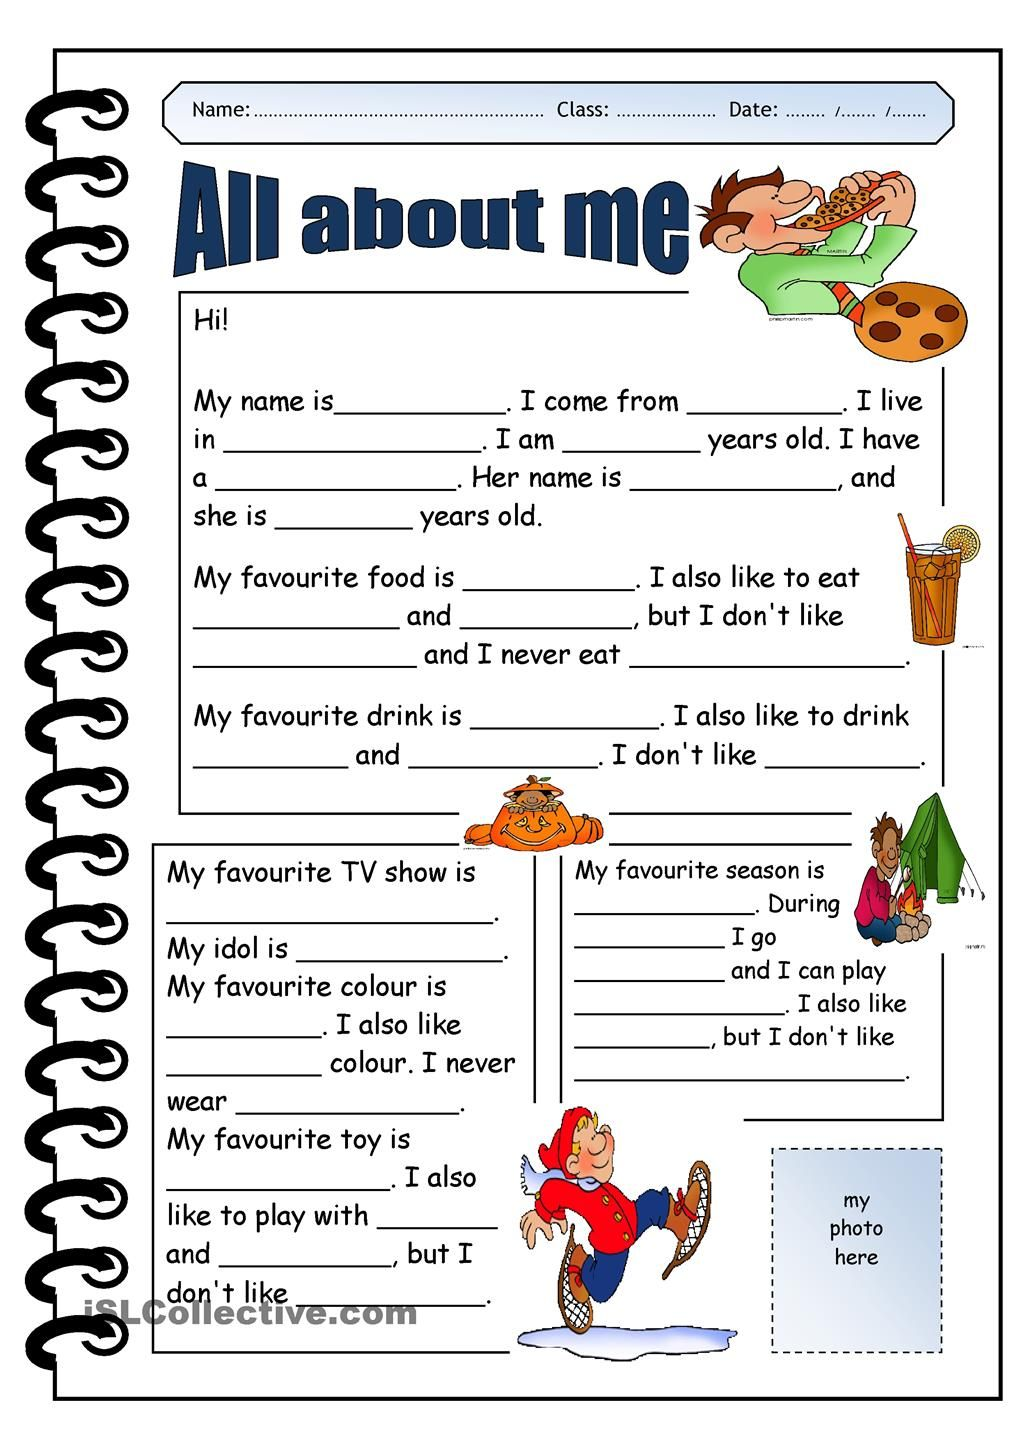 worksheet About Me Worksheet 1000 ideas about all me worksheet on pinterest work writing and me